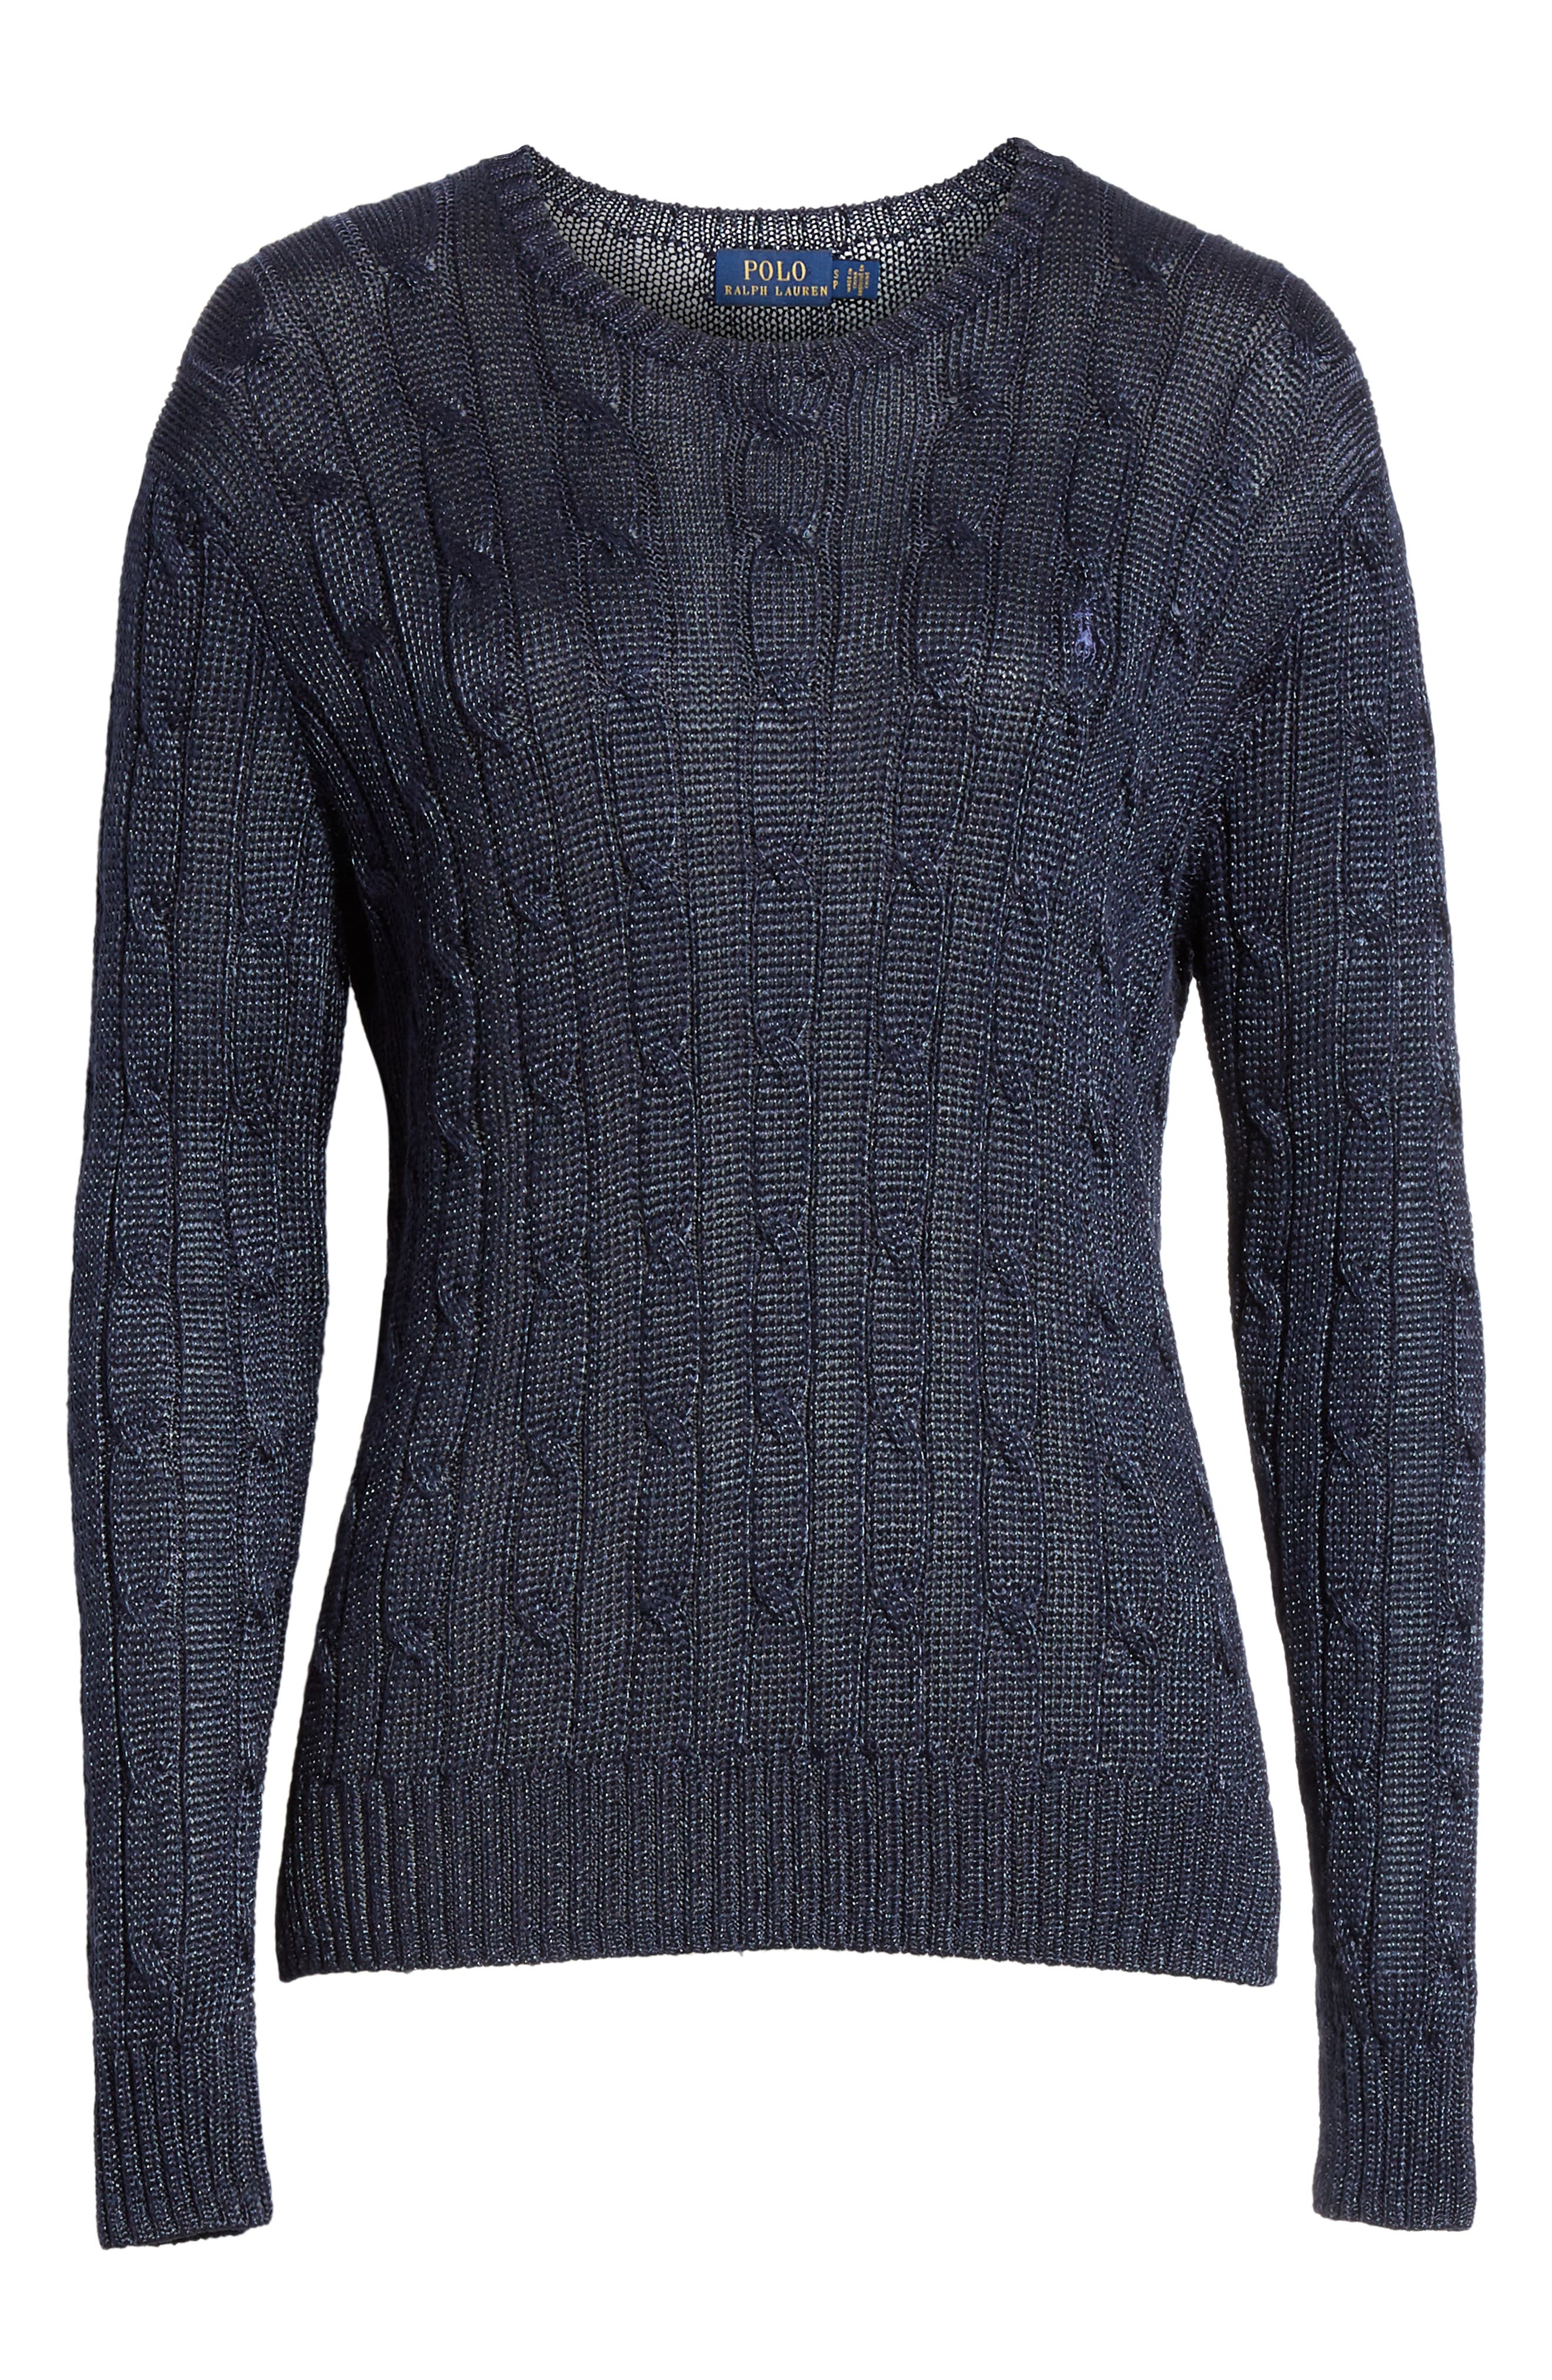 Cable Sweater,                             Alternate thumbnail 6, color,                             NAVY METALLIC